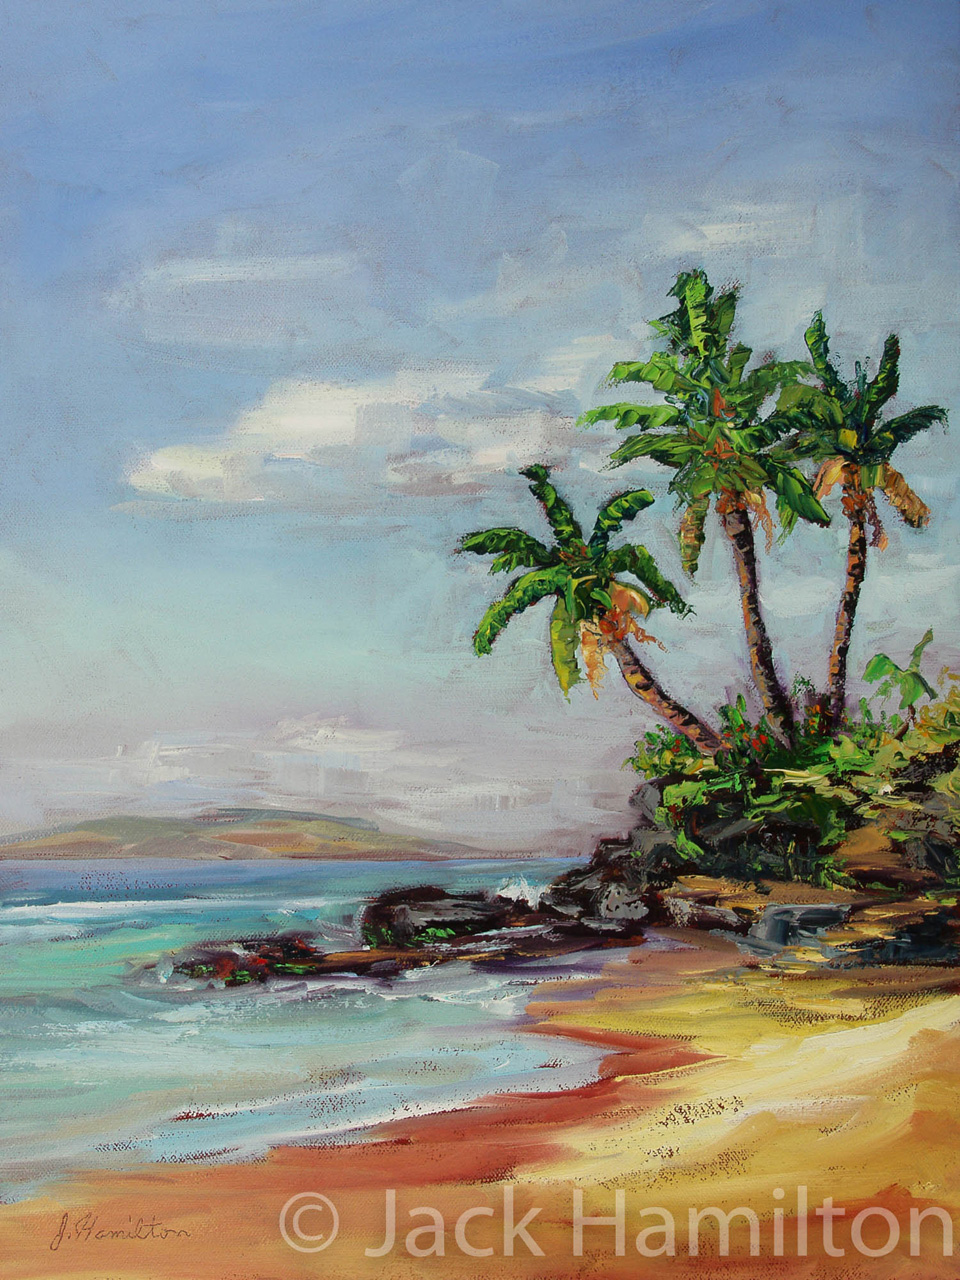 Three Palms With Distant Lanai by Jack Hamilton Oil on Canvas